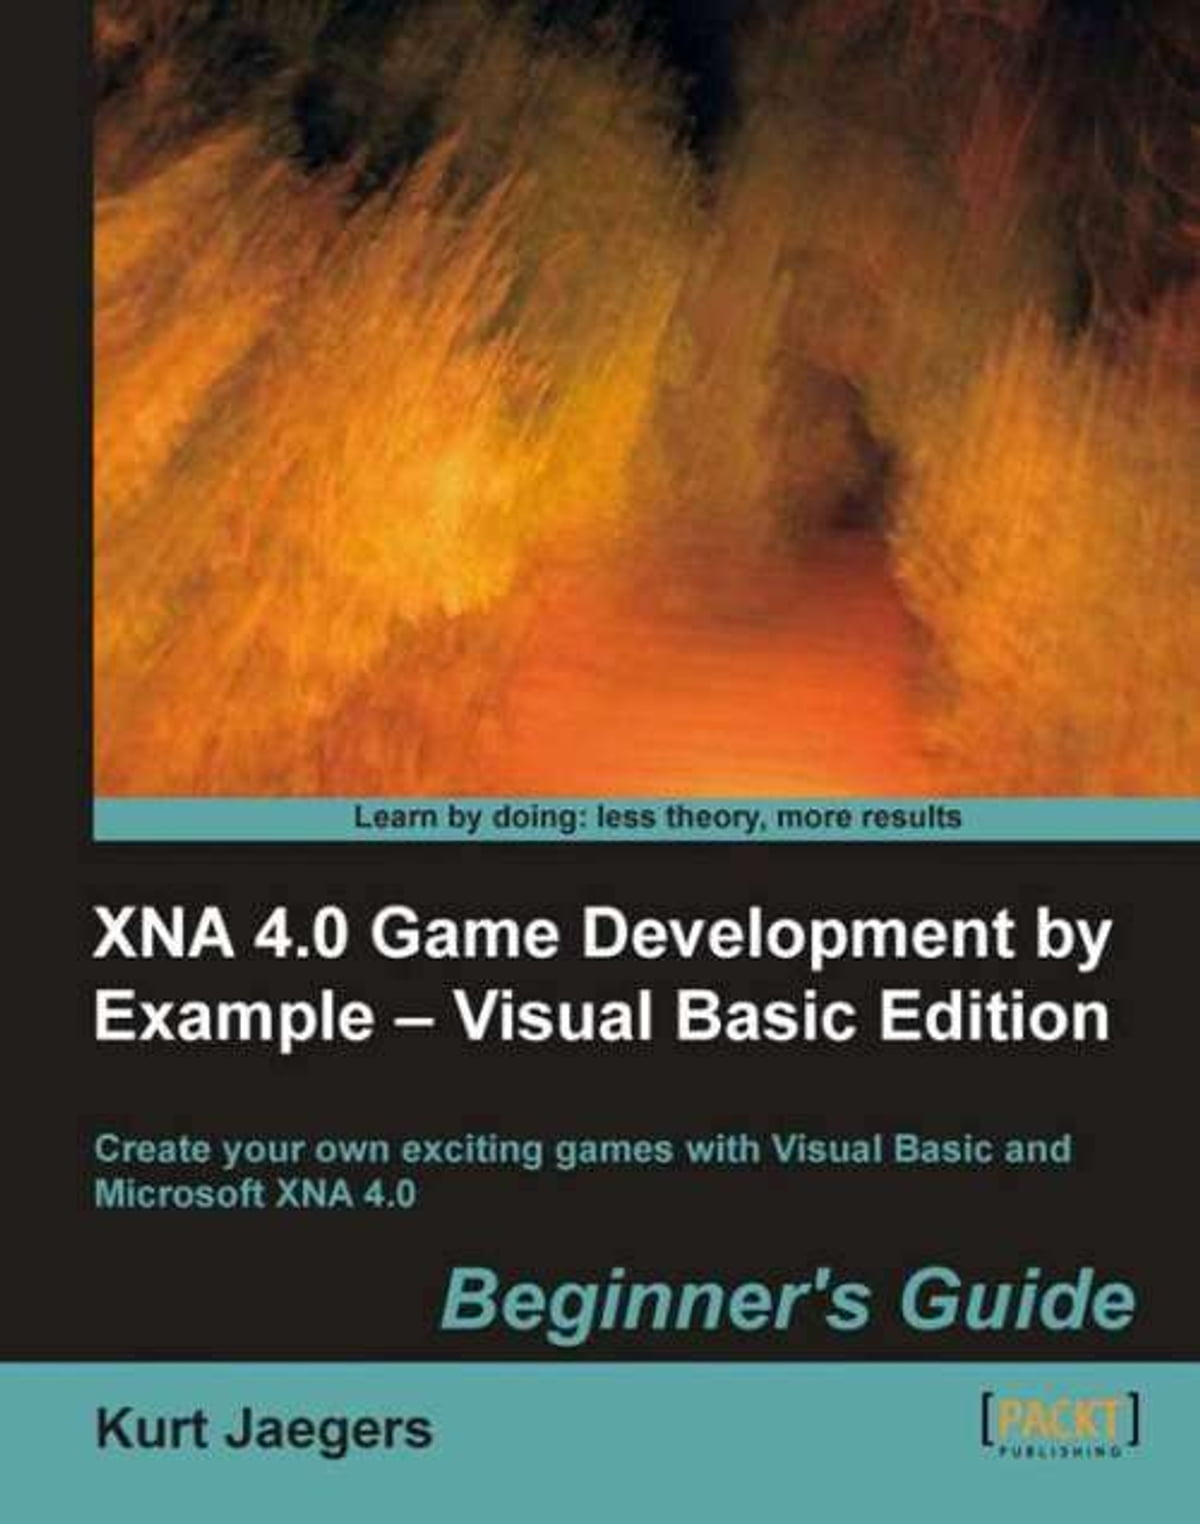 XNA 4.0 Game Development by Example: Beginner's Guide Visual Basic Edition  eBook by Kurt Jaegers - 9781849692410 | Rakuten Kobo